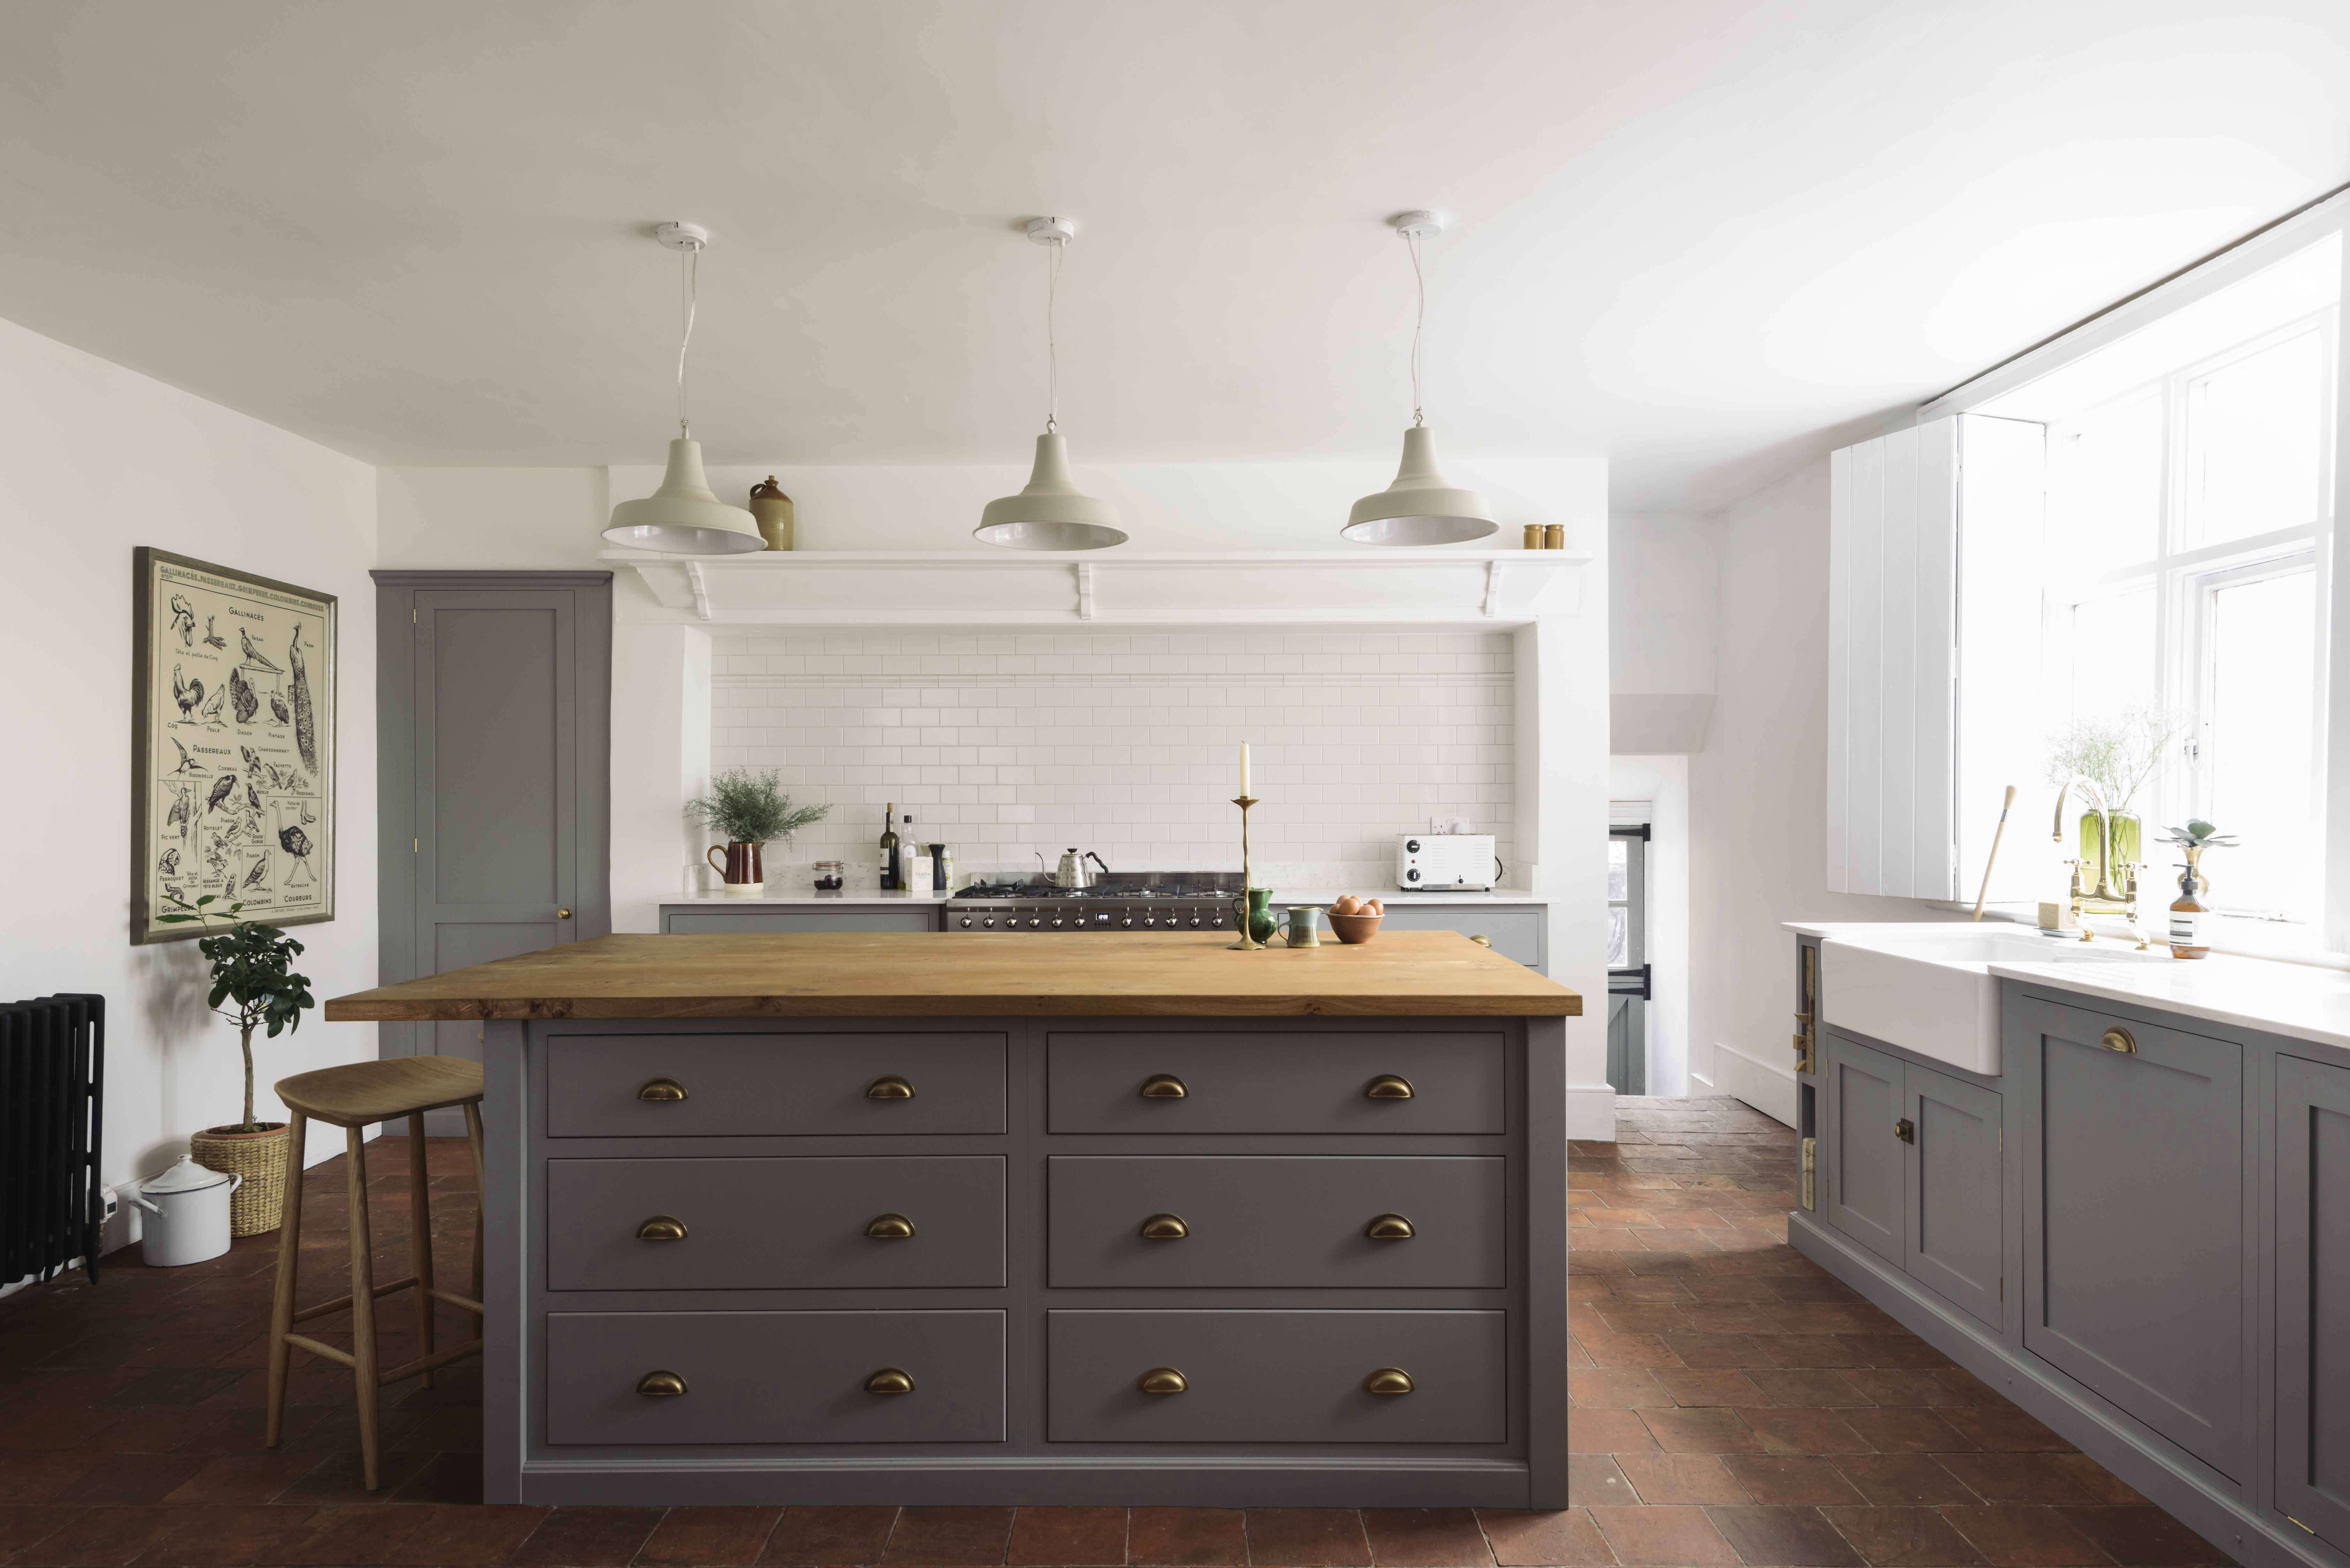 The Cheshire Townhouse Kitchen by deVOL - Remodelista